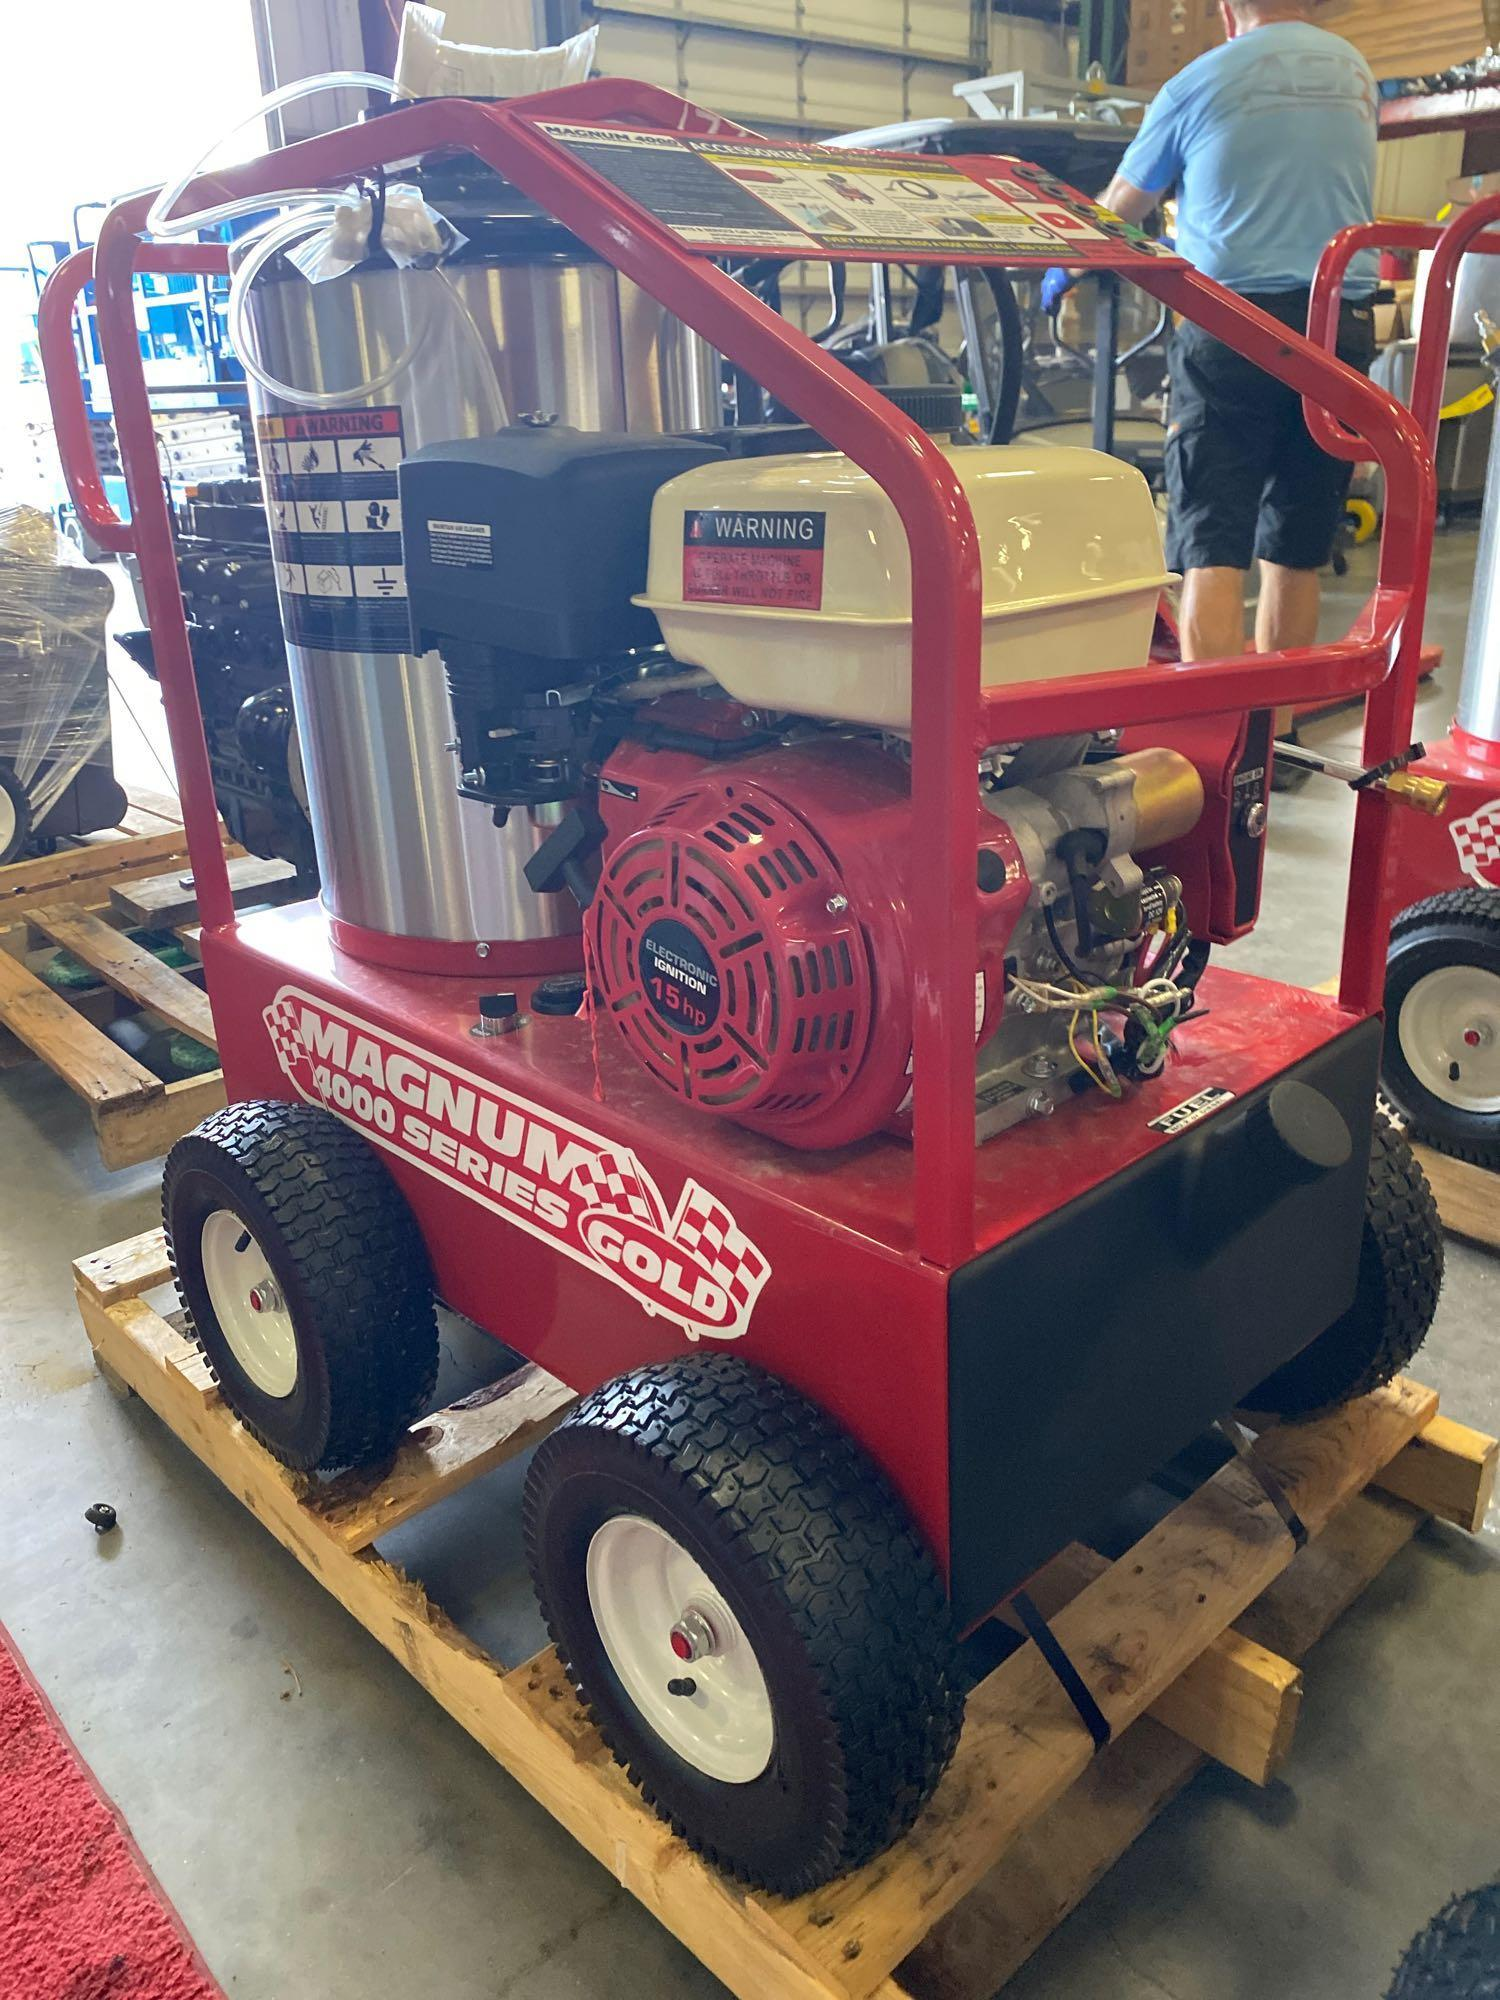 NEW/UNUSED 2020 MAGNUM 4000 HEATED PRESSURE WASHER, ELECTRIC START - Image 5 of 5